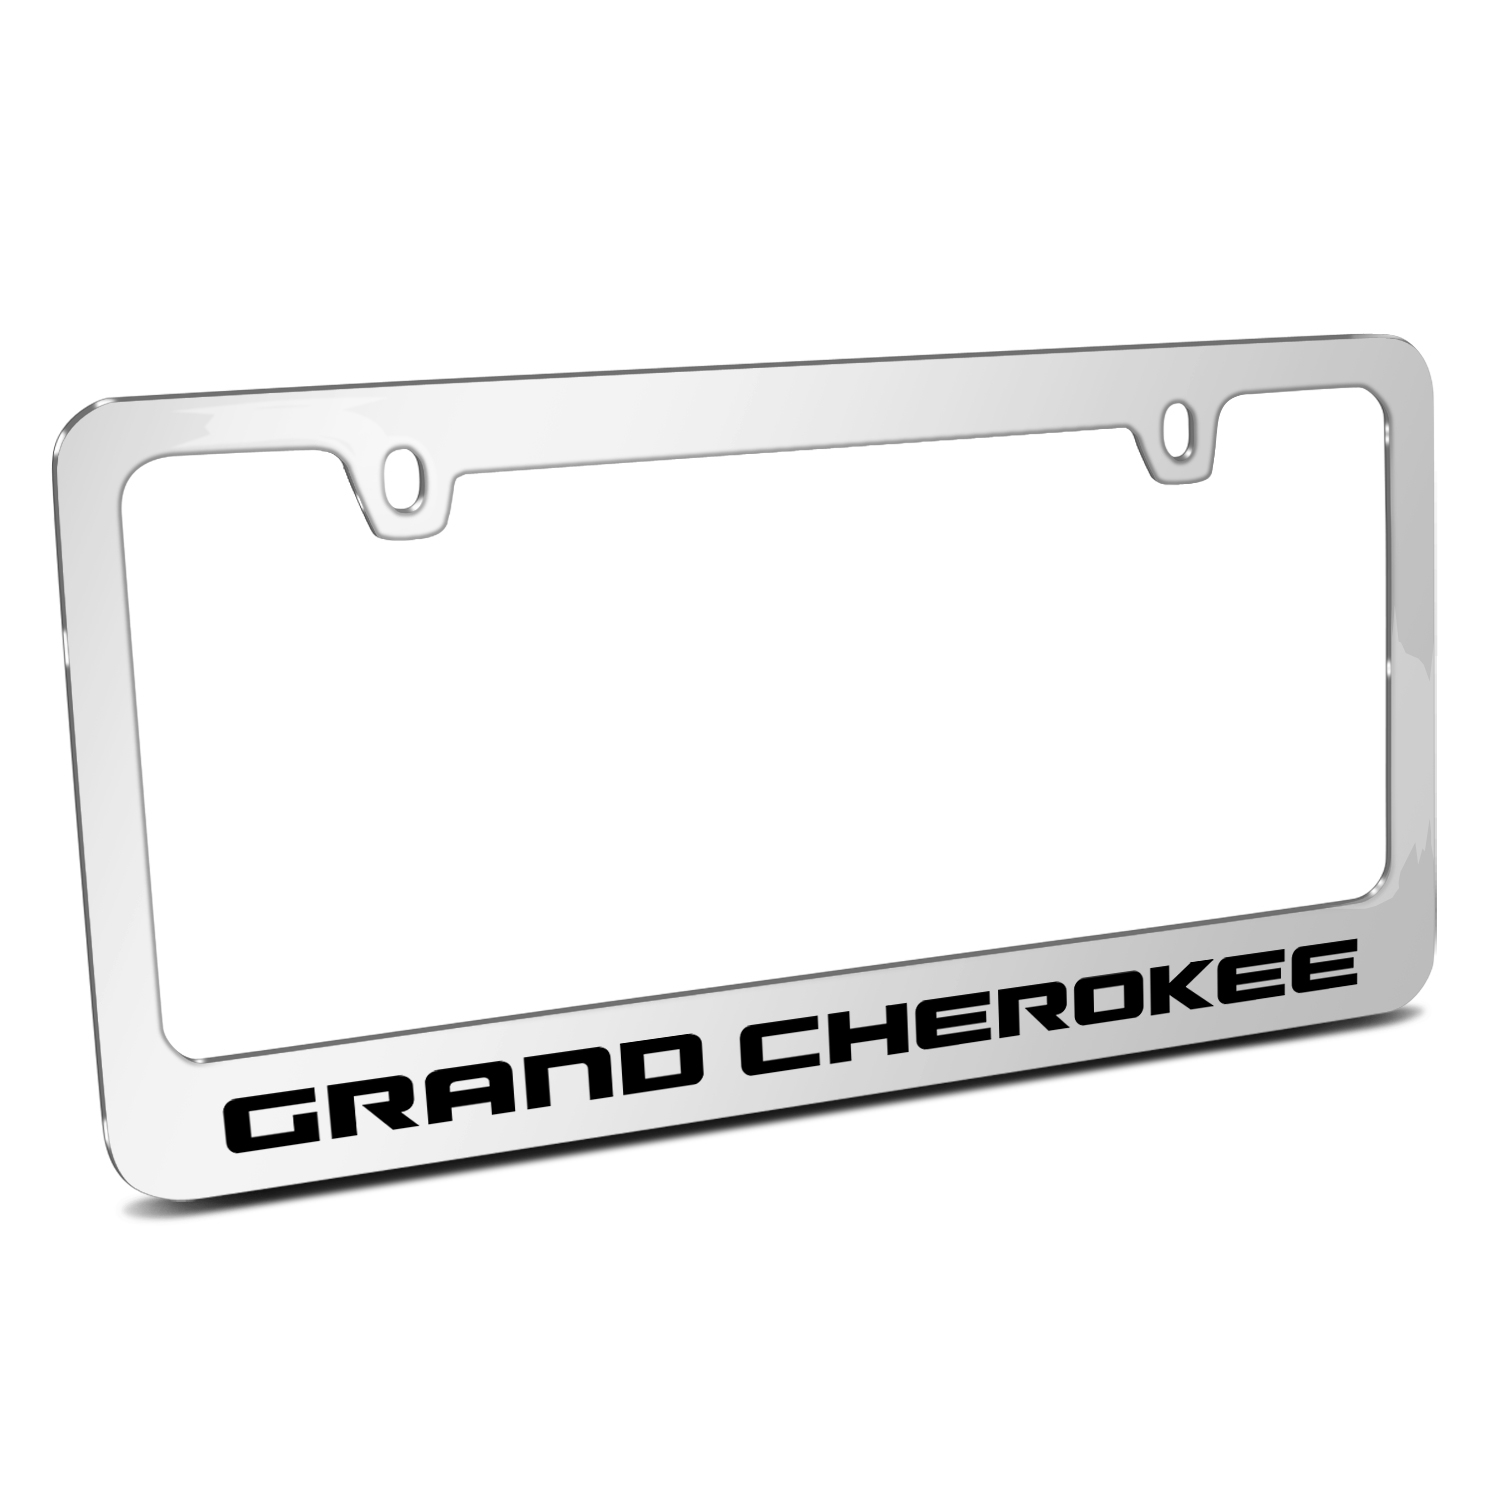 Jeep Grand Cherokee Mirror Chrome Metal License Plate Frame